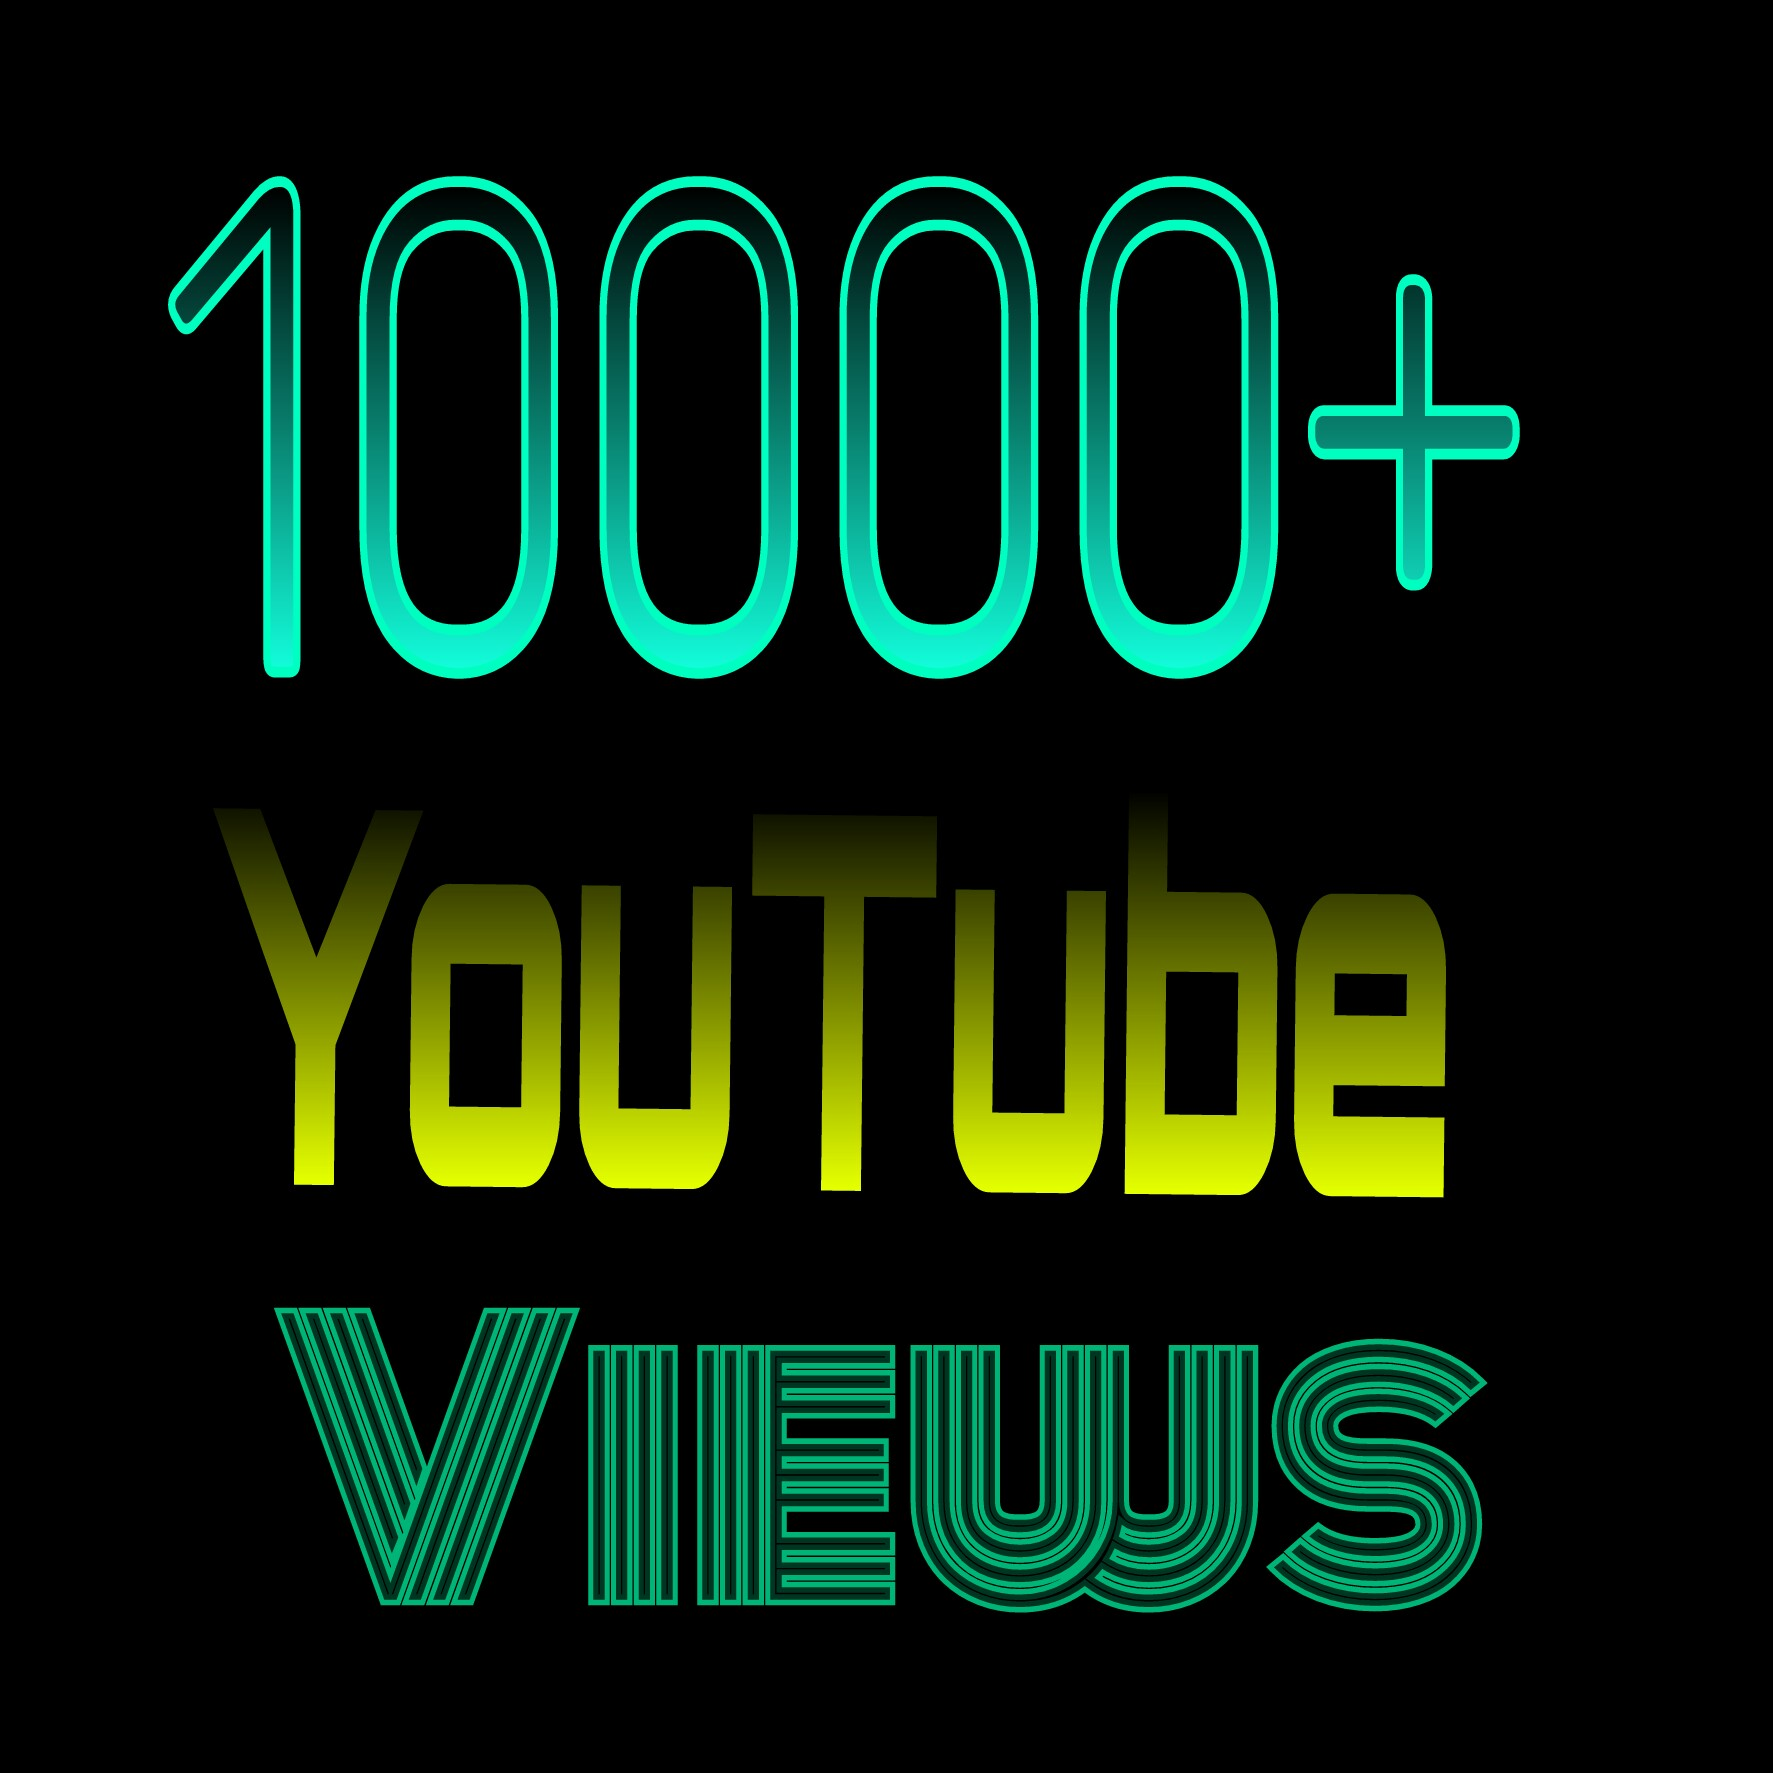 Permanent & Human Verified Active 10,000 +YouTube Views 400  likes  20 custom comments